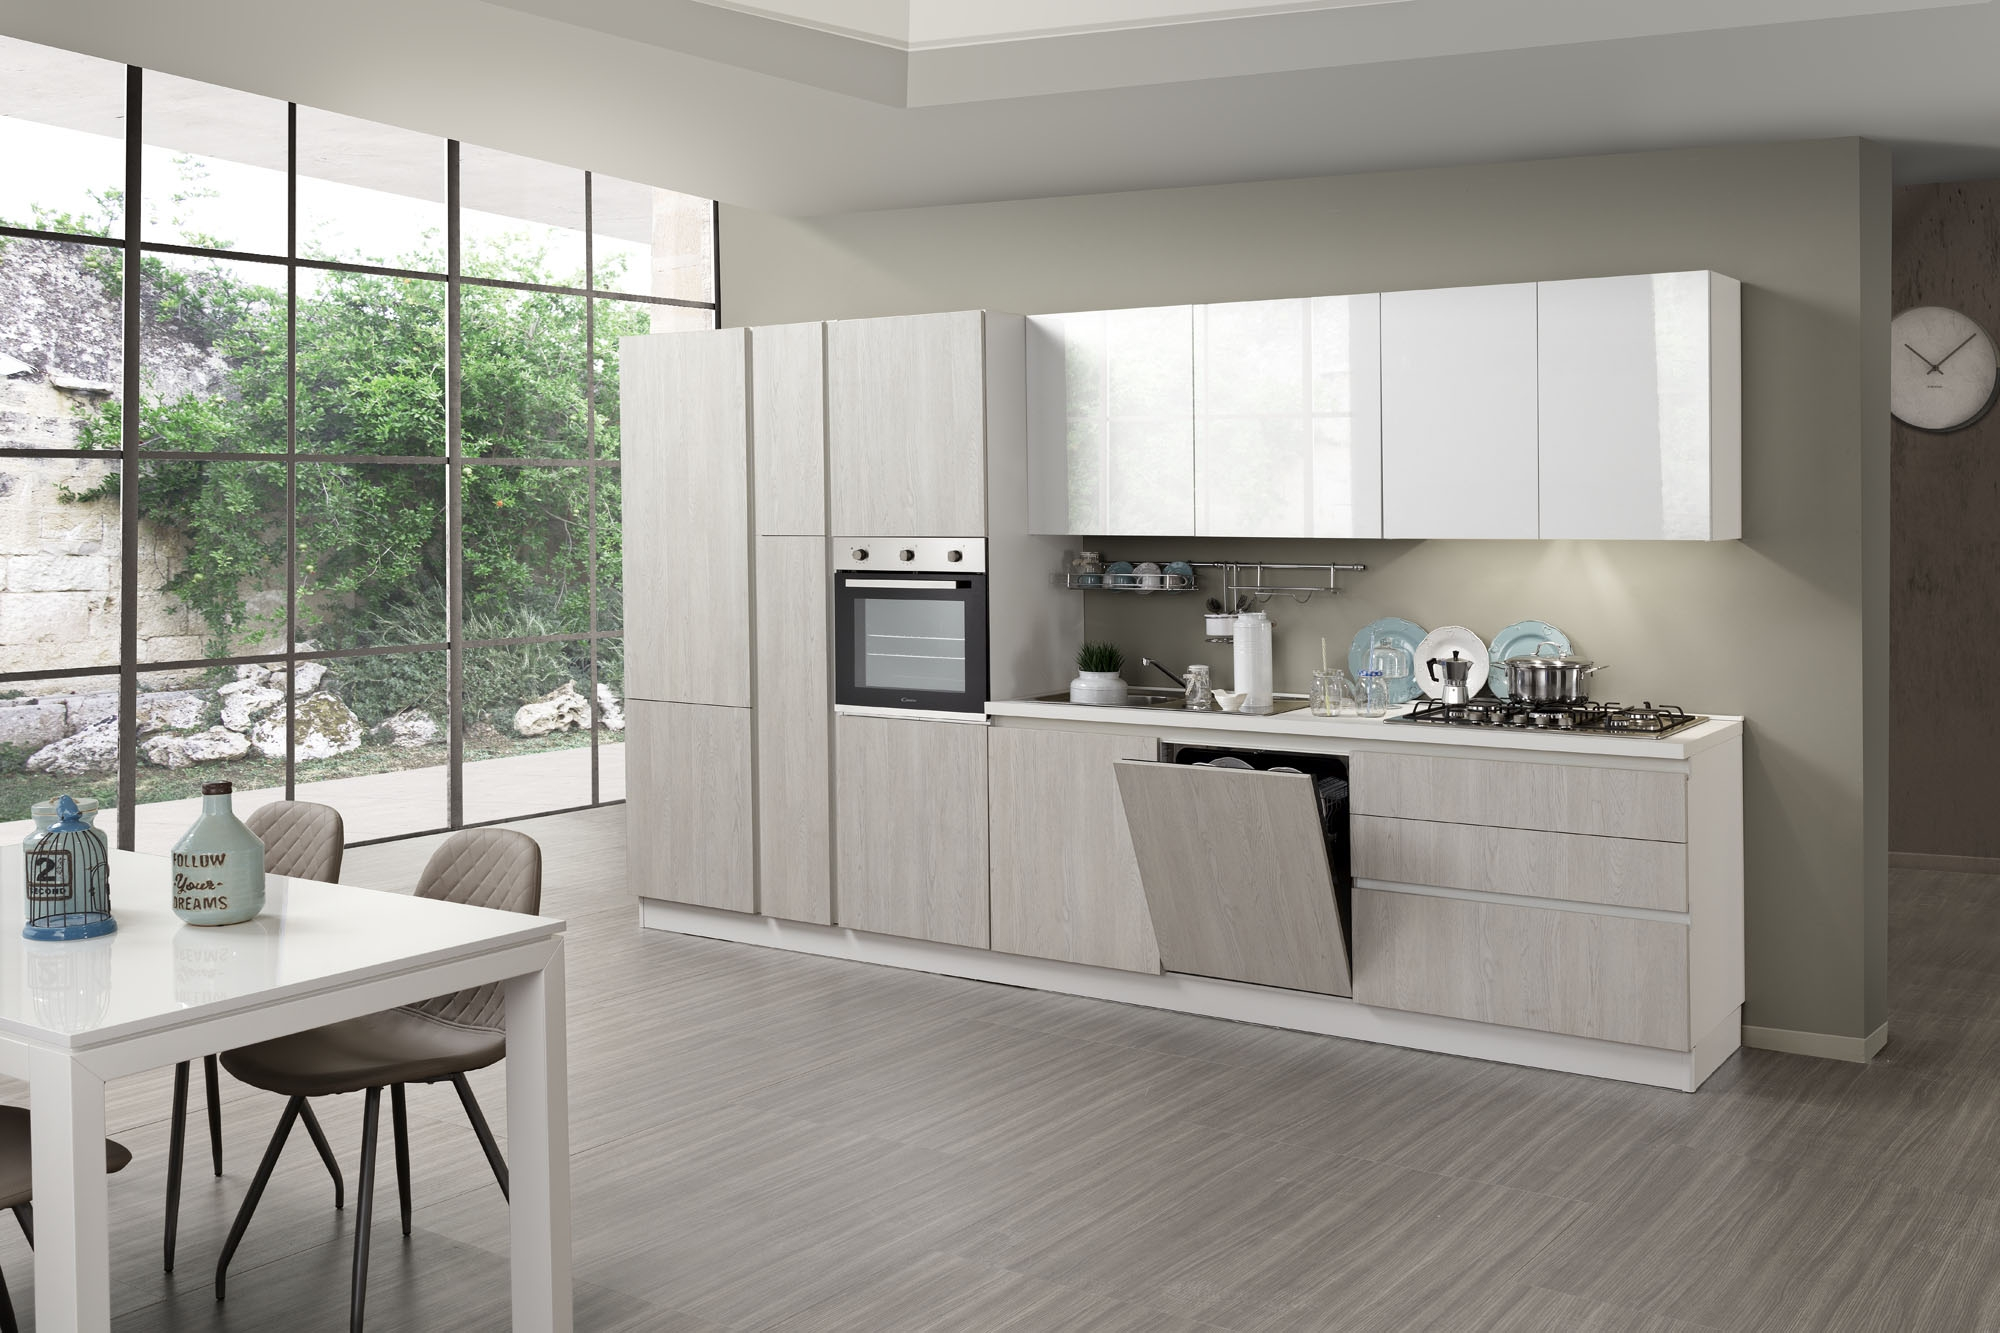 Nuovarredo cucina koral for Cucine shop on line